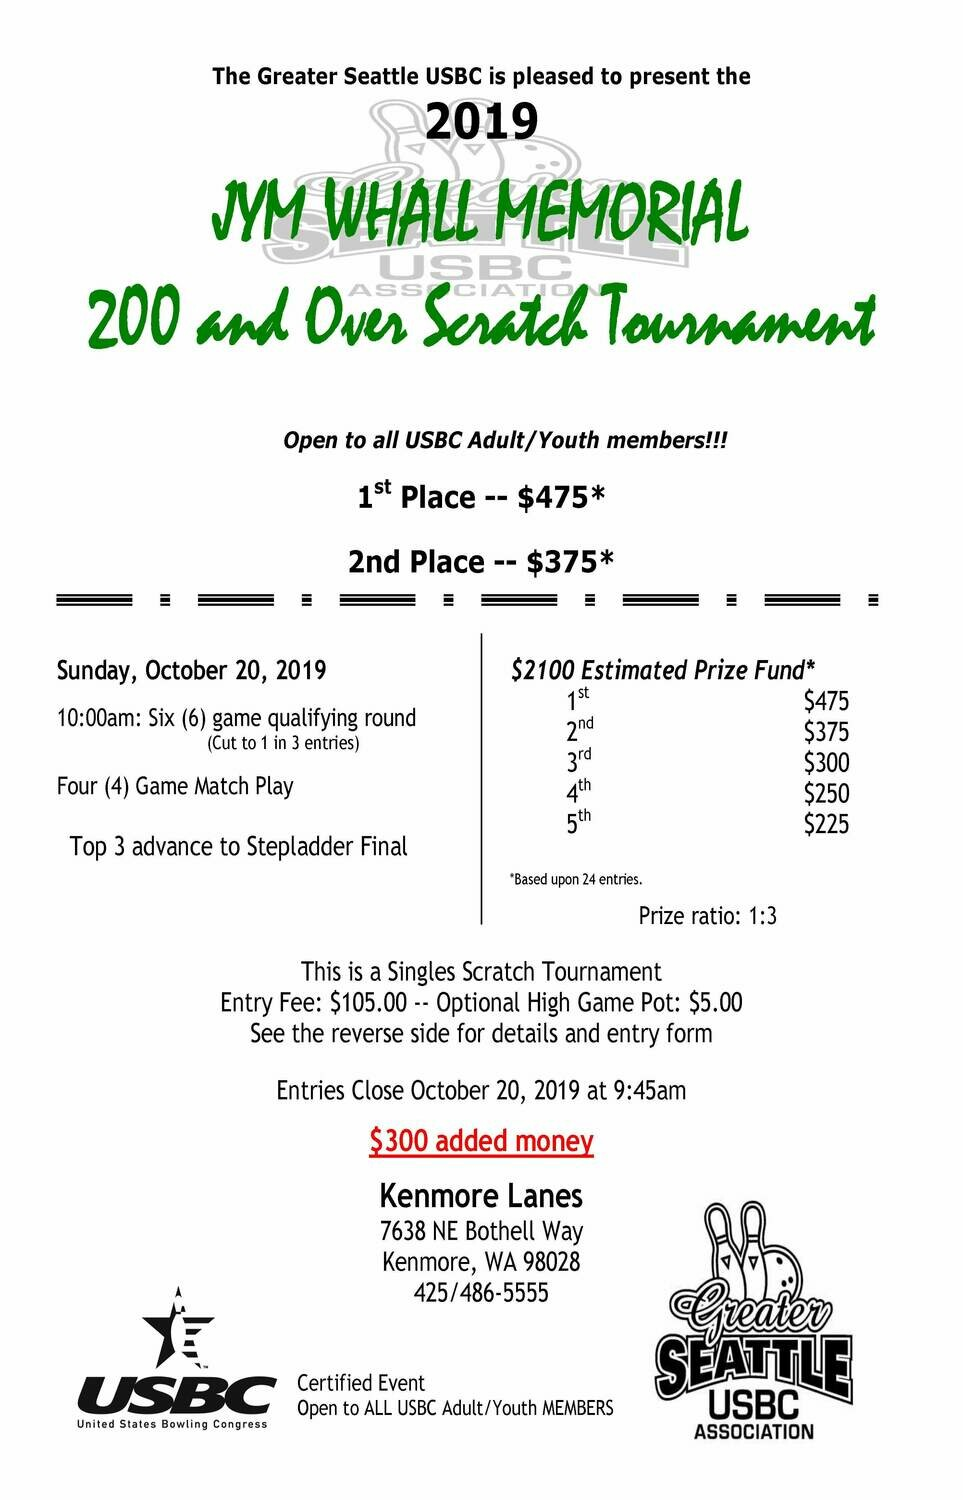 Jym Whall Memorial Tournament - Over 200 Scratch Division